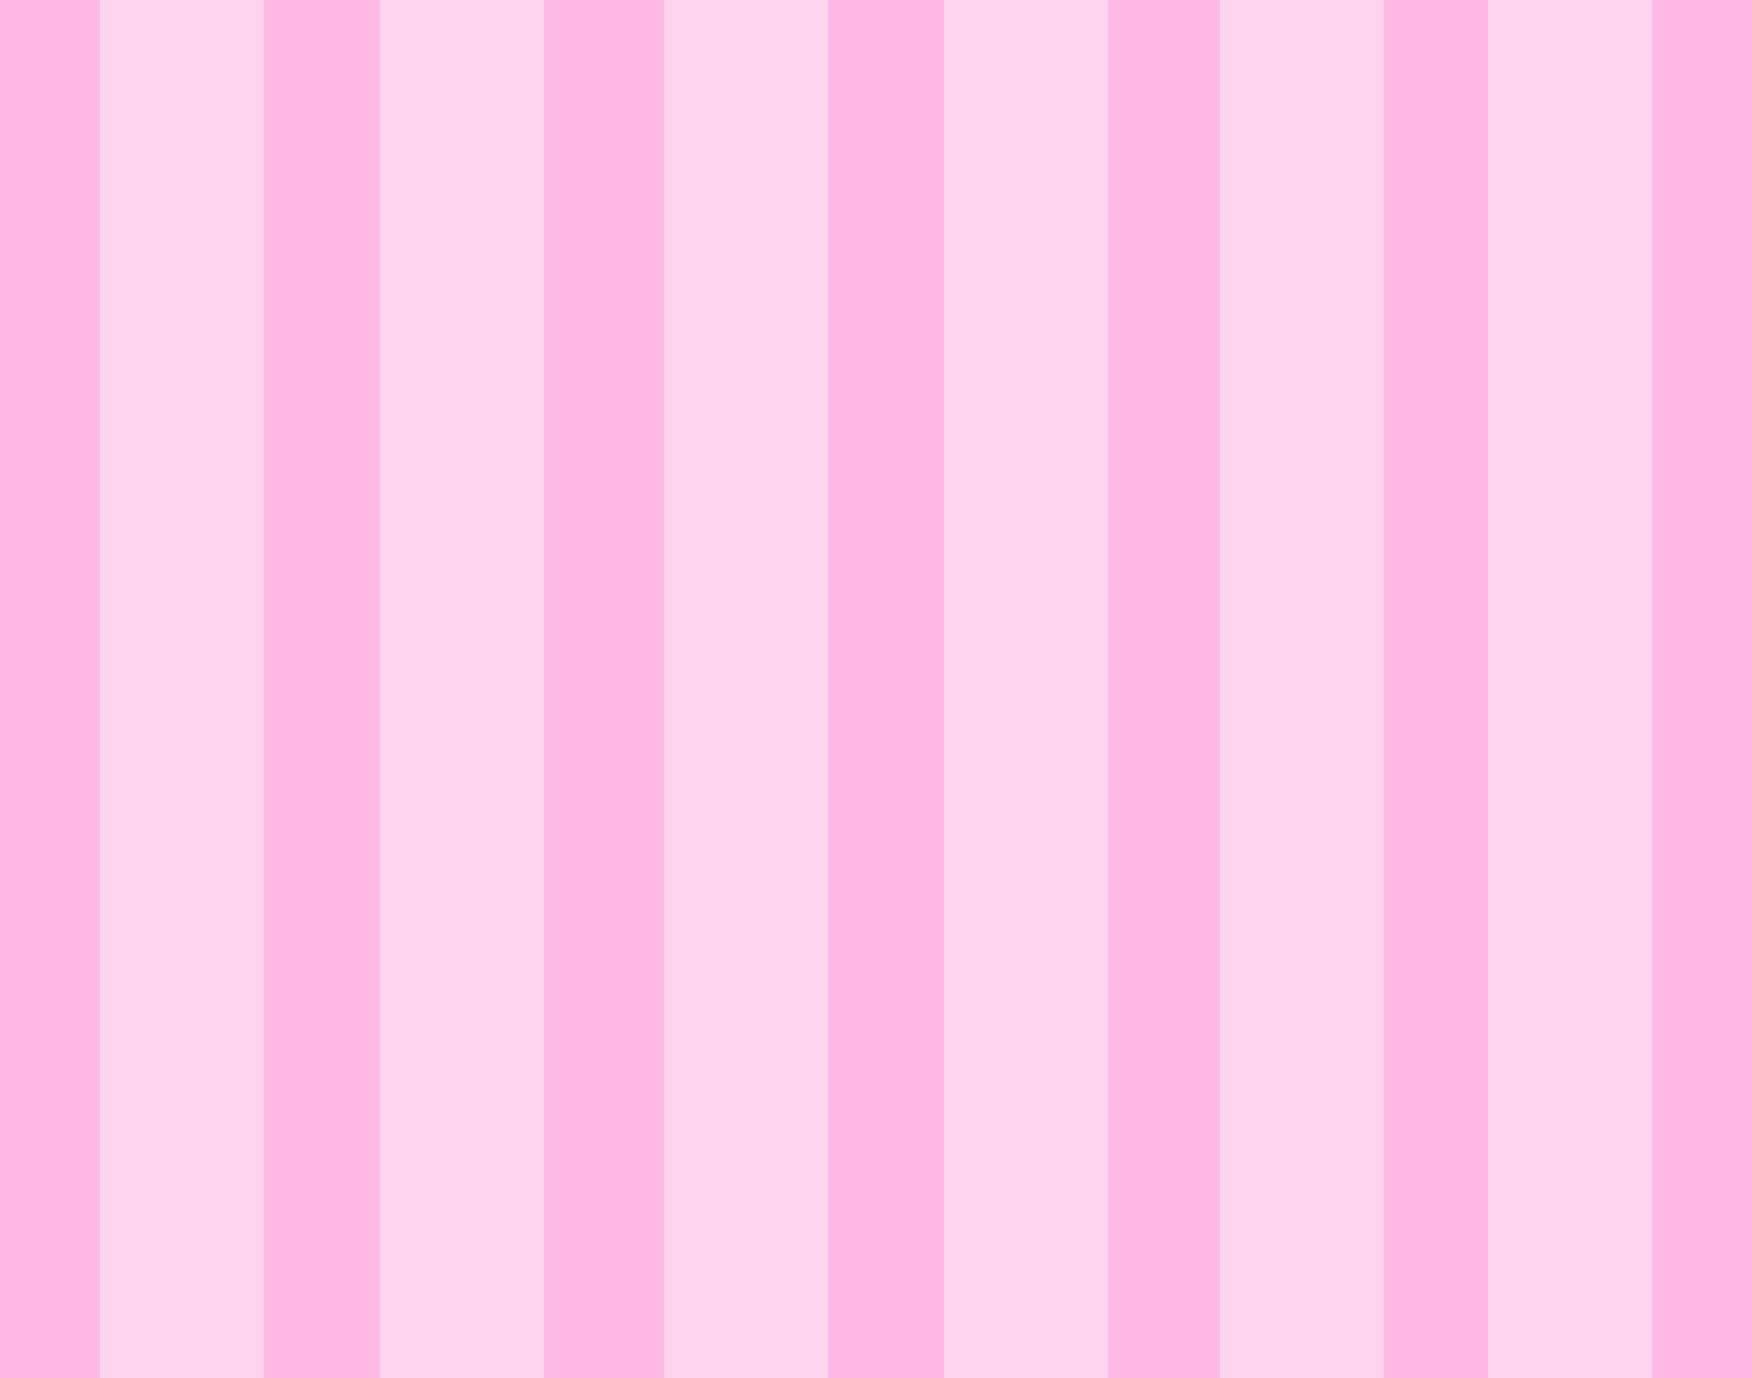 Pink And Blue Striped Wallpaper 2989 Wallpaper: Pin By Lotusbluelight On Free Backgrounds In 2019